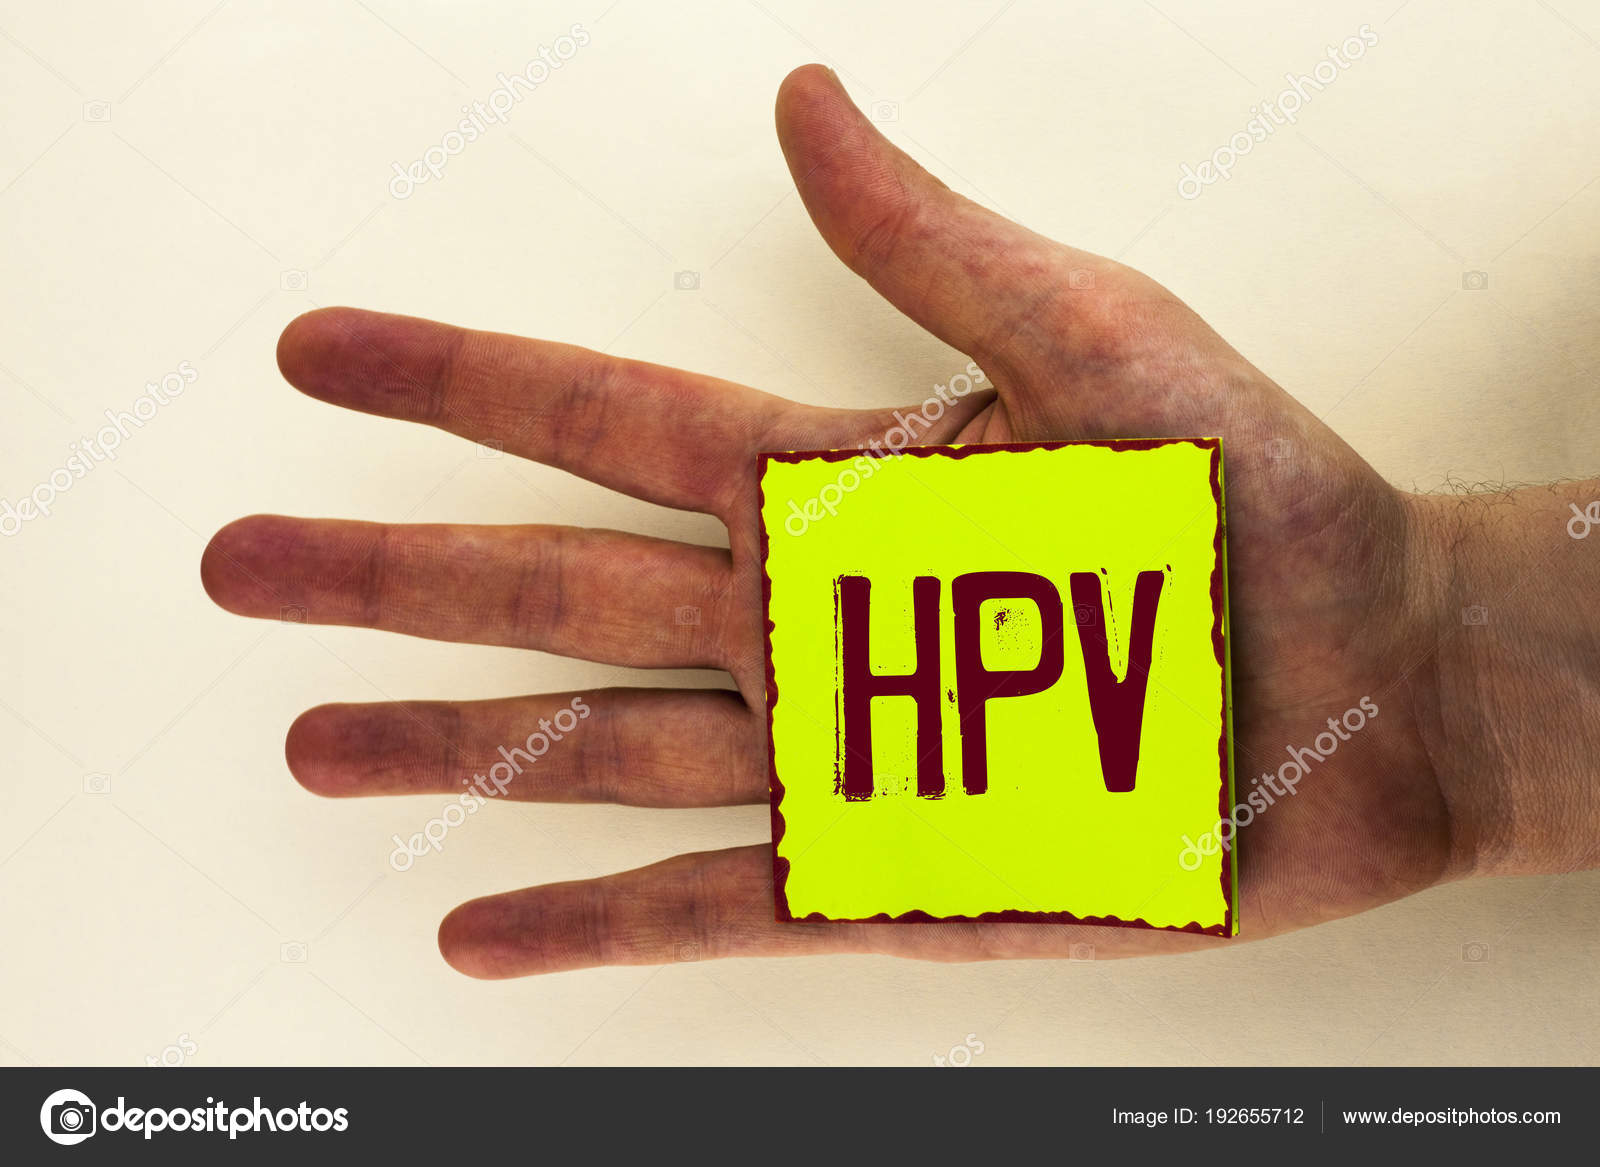 hpv can cause what cancer cancerul de col uterin engleza